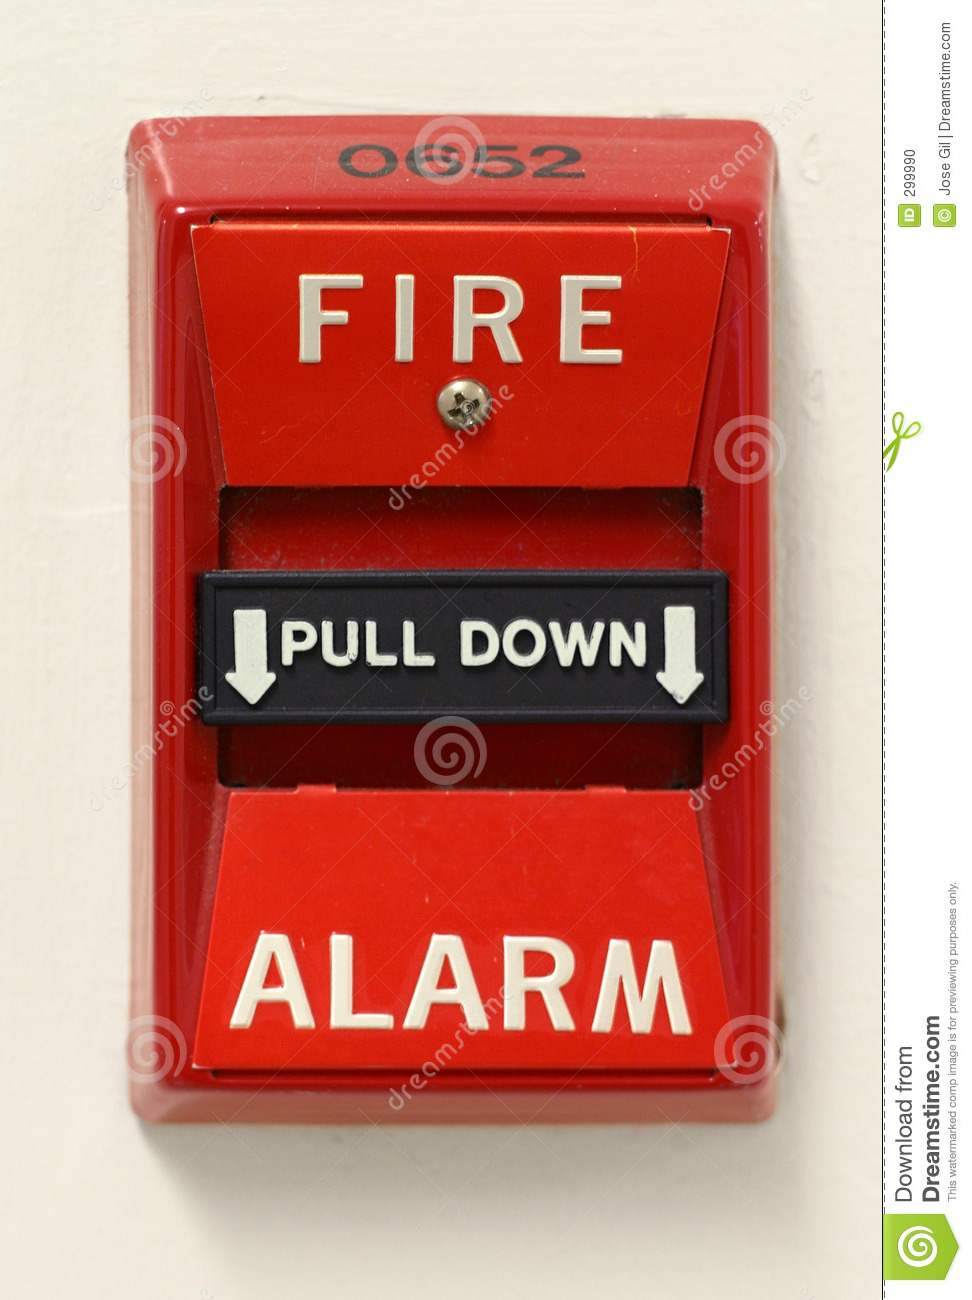 fire-alarm-switch-299990 House Painting Design on house sliding gates design, house drawing design, pest control design, house graphic design, house fascia design, house recording studio design, house sketch design, computer repair design, house attic ventilation design, house molding design, simple small house design, house layout design, house machine embroidery design, house tile design, house septic tank design, house color design, house perspective design, house architecture design, 3 room hdb design, house renovations design,